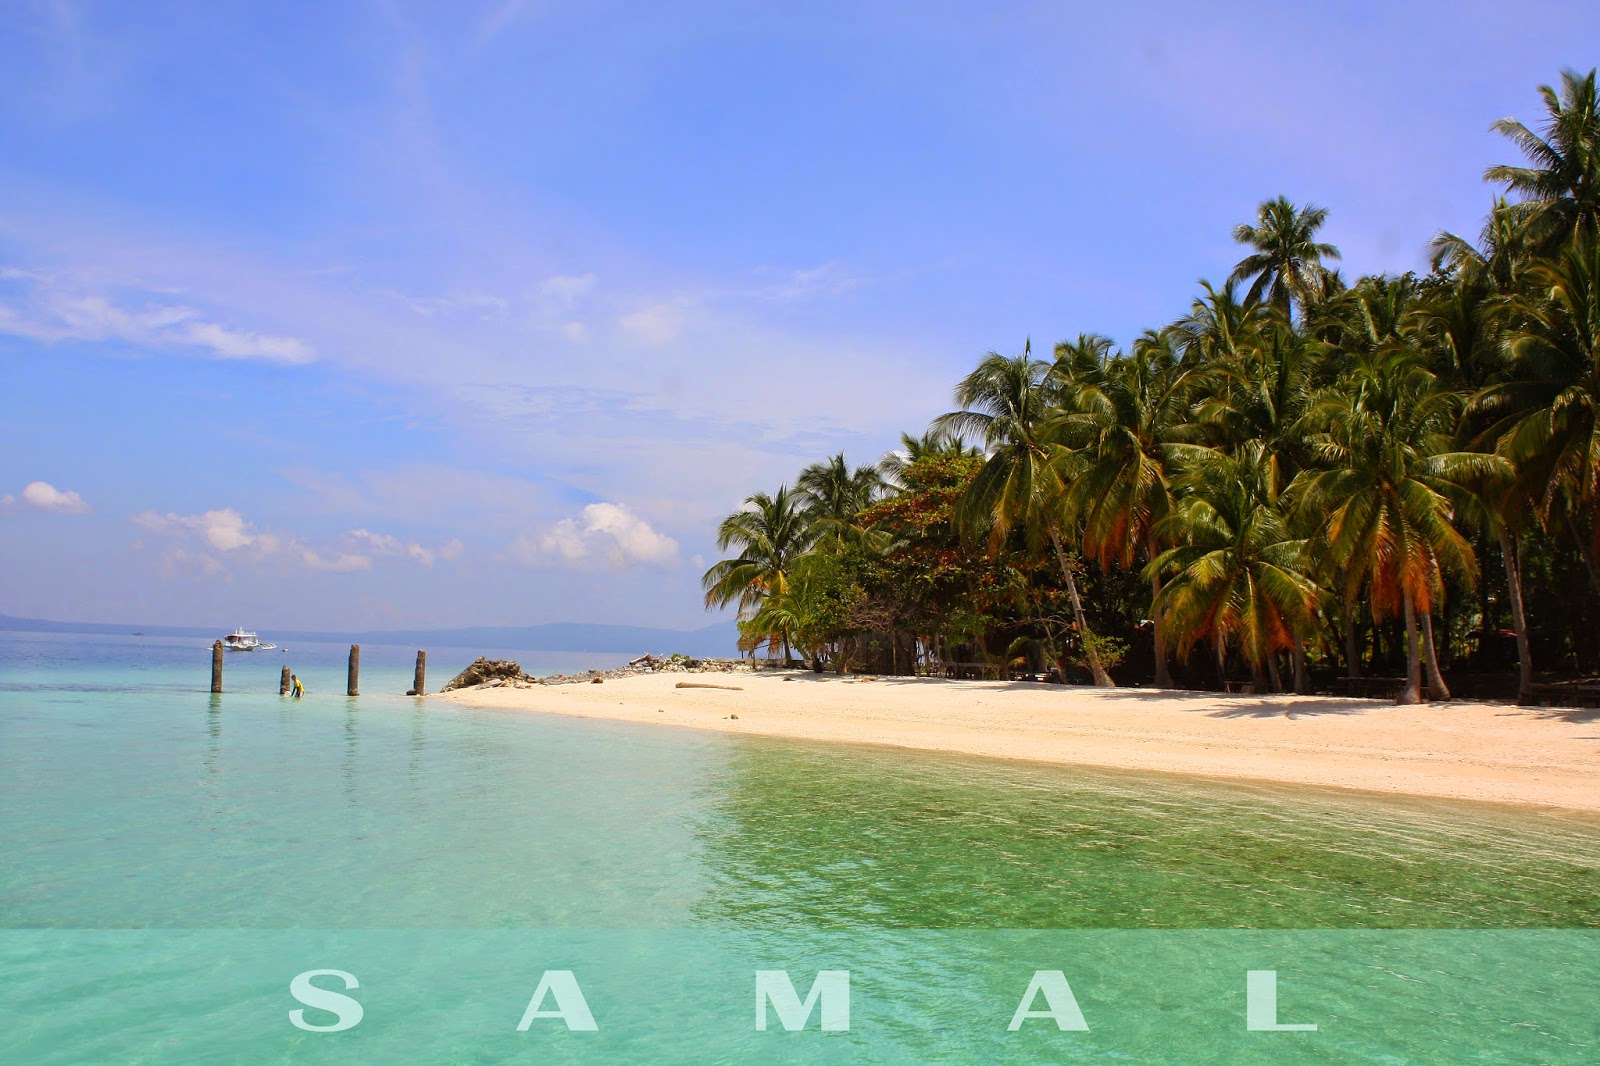 Samal Island Beach Resorts Pictures